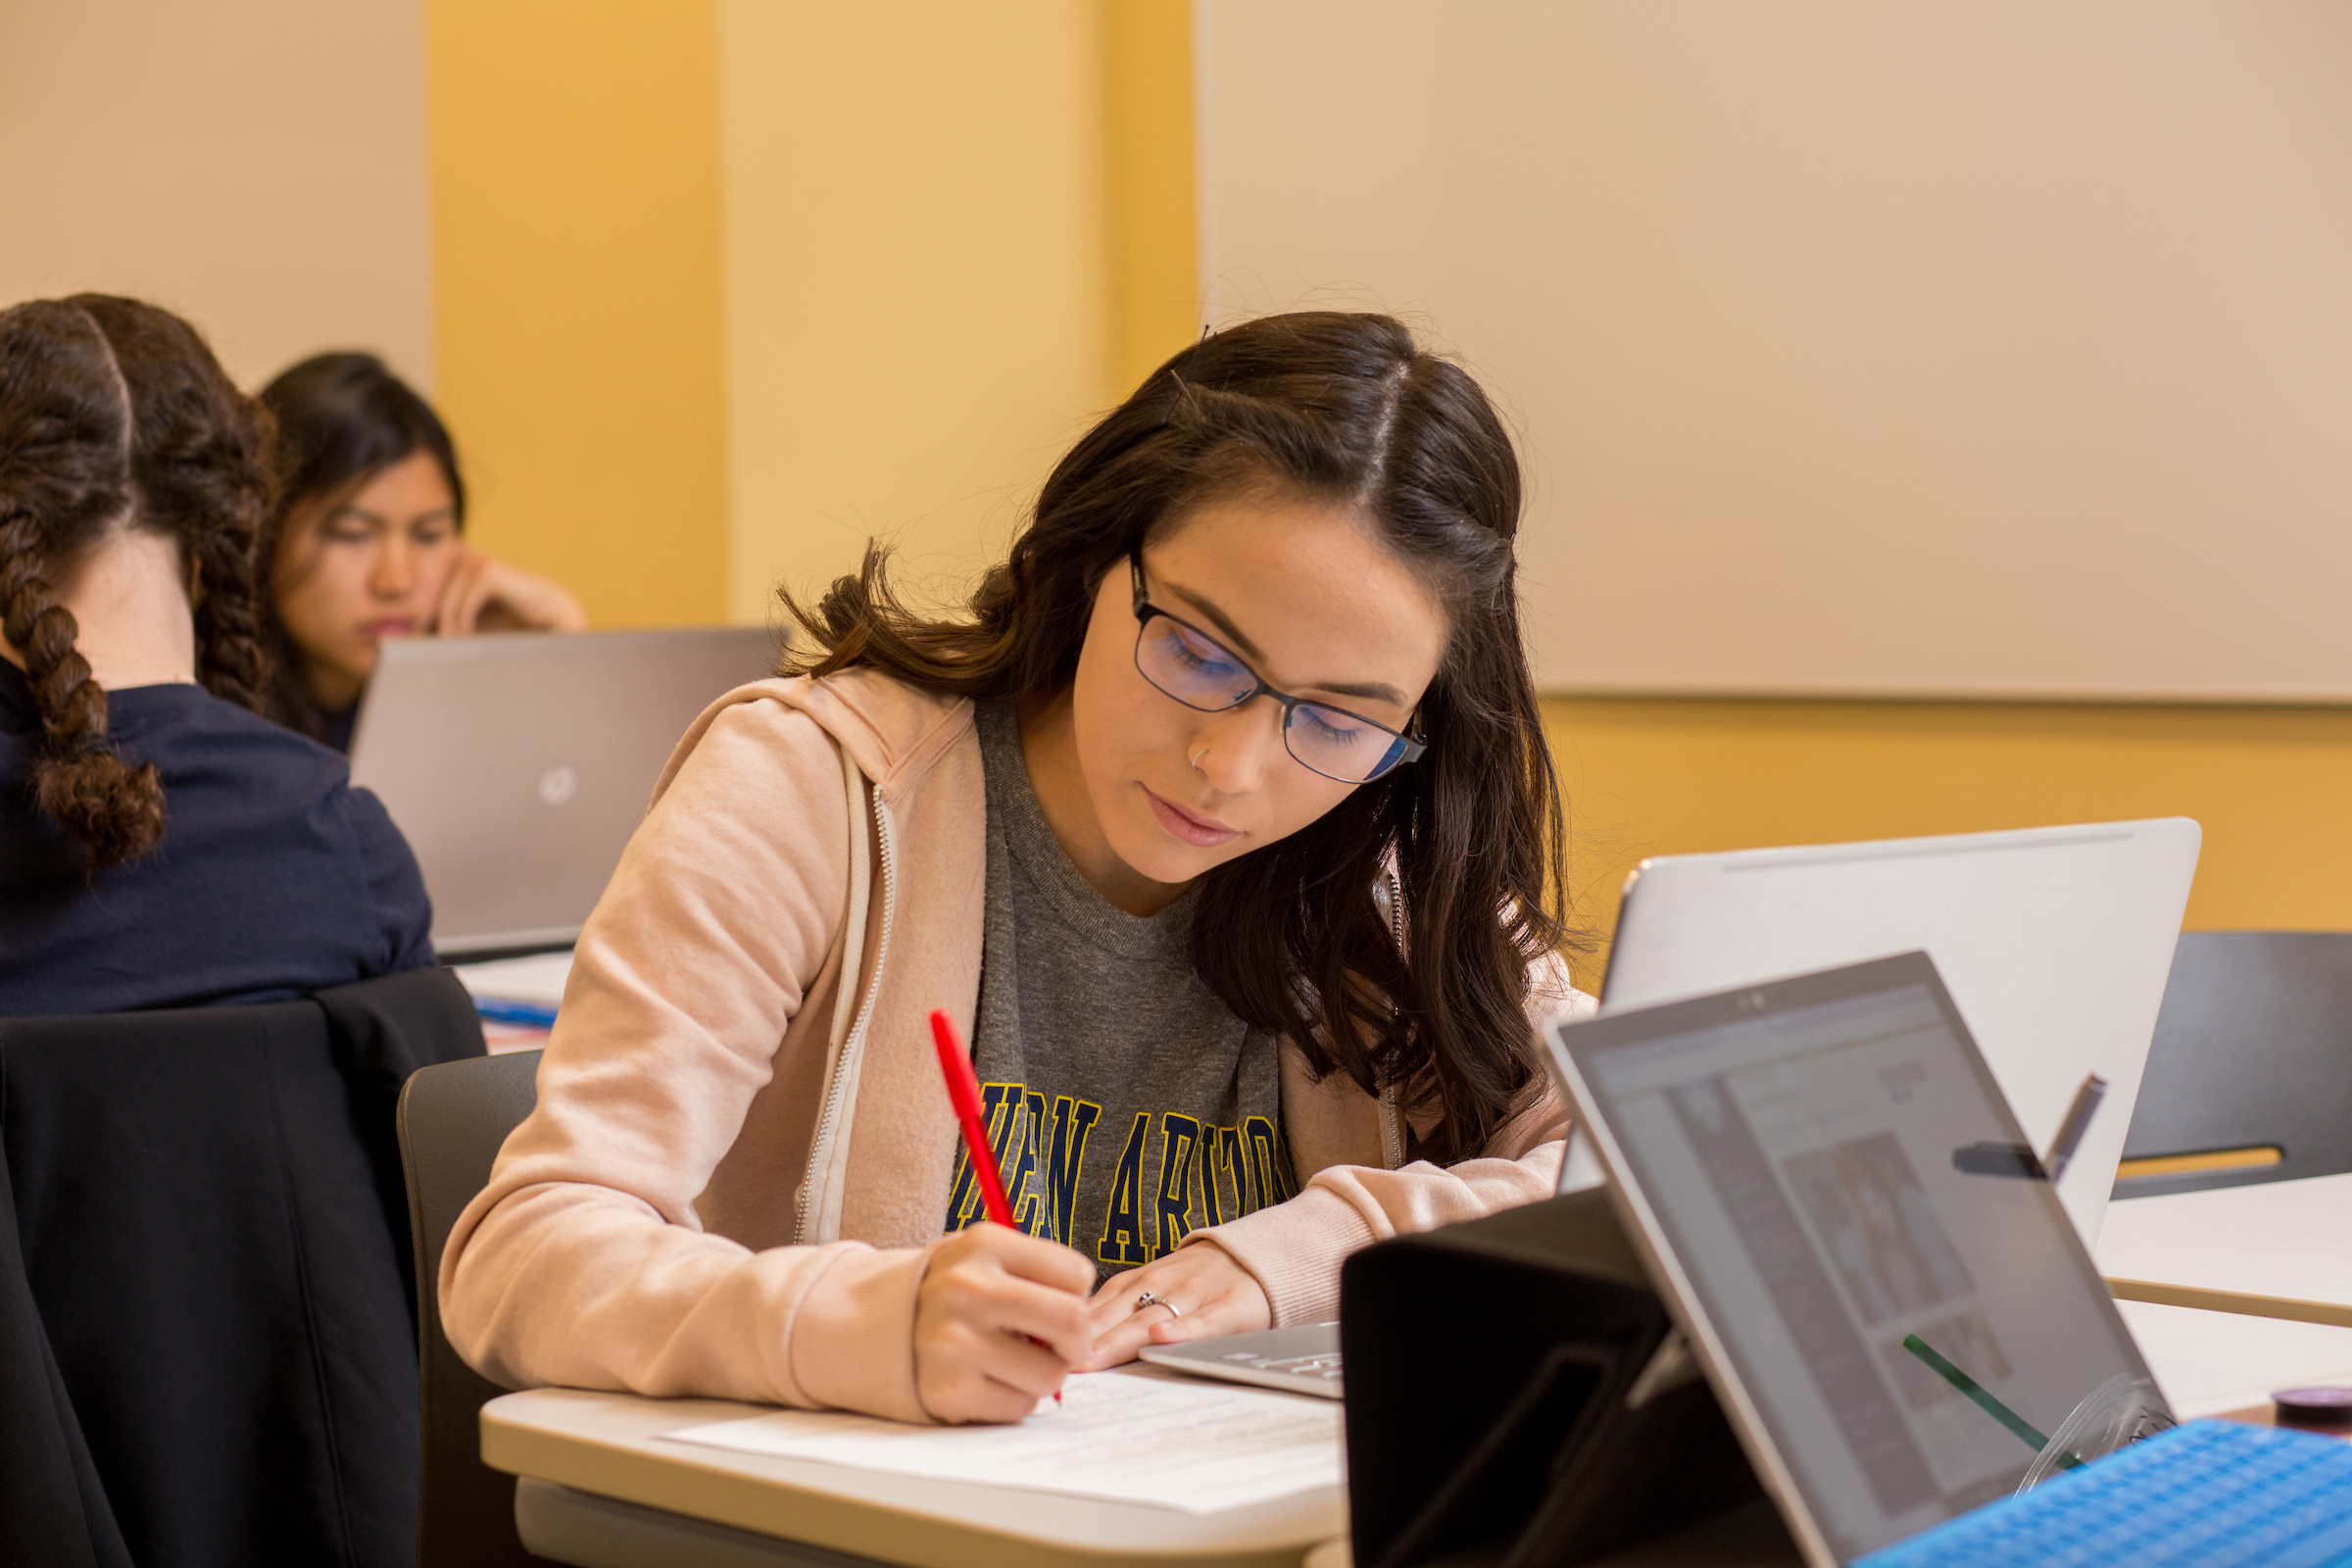 Student working on assignment